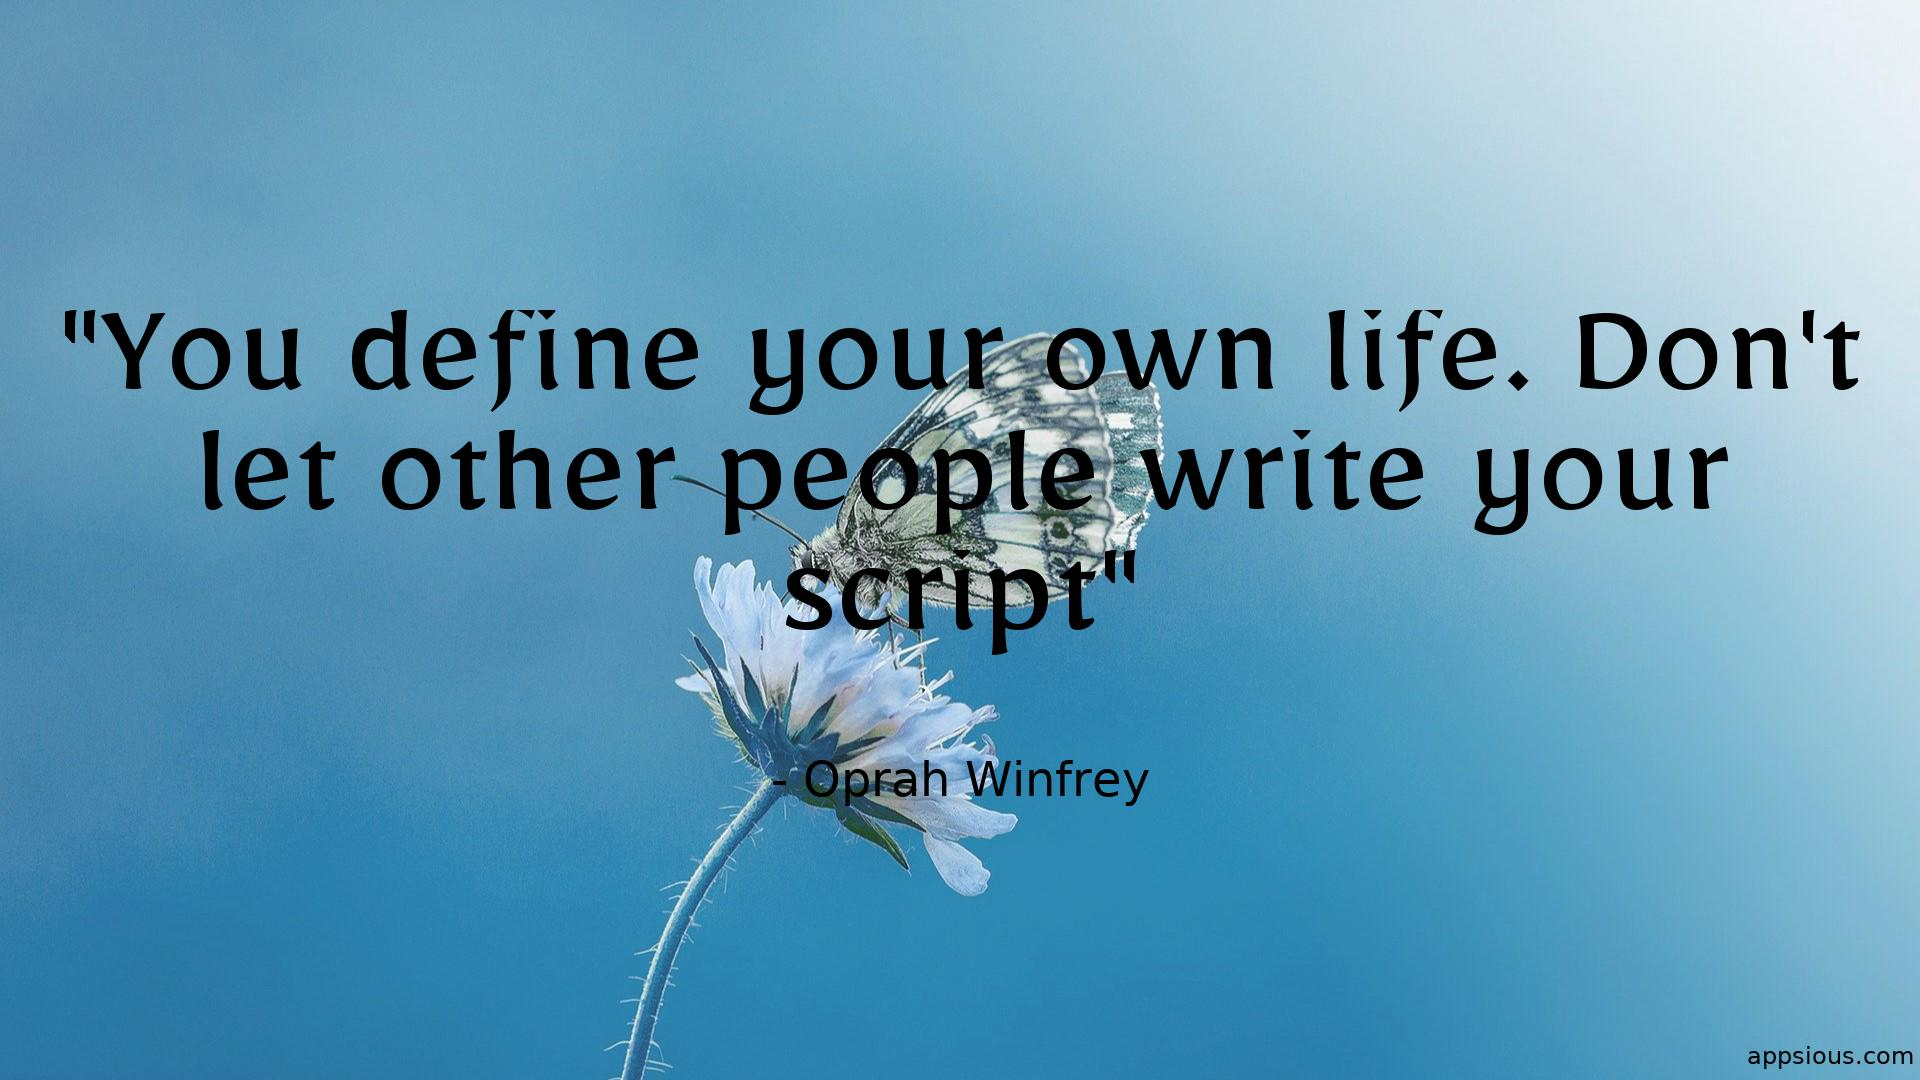 You define your own life. Don't let other people write your script